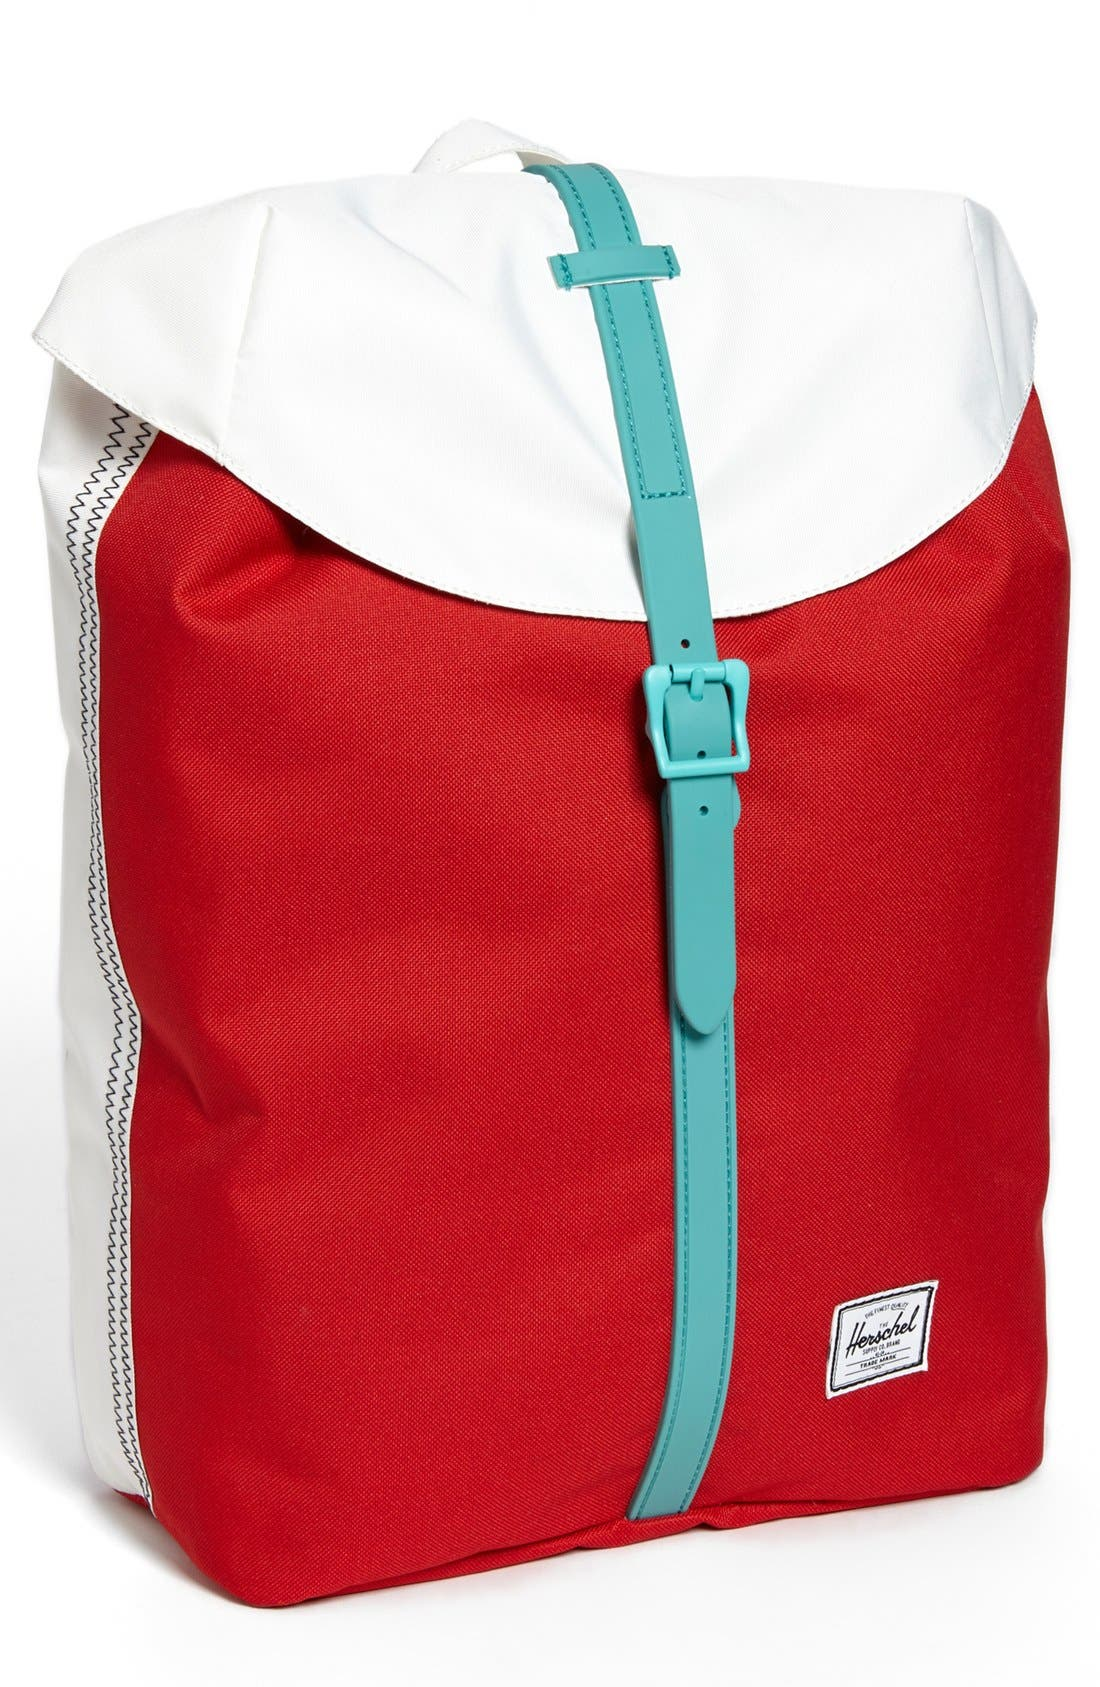 Main Image - Herschel Supply Co. 'Post - Studio Collection' Backpack